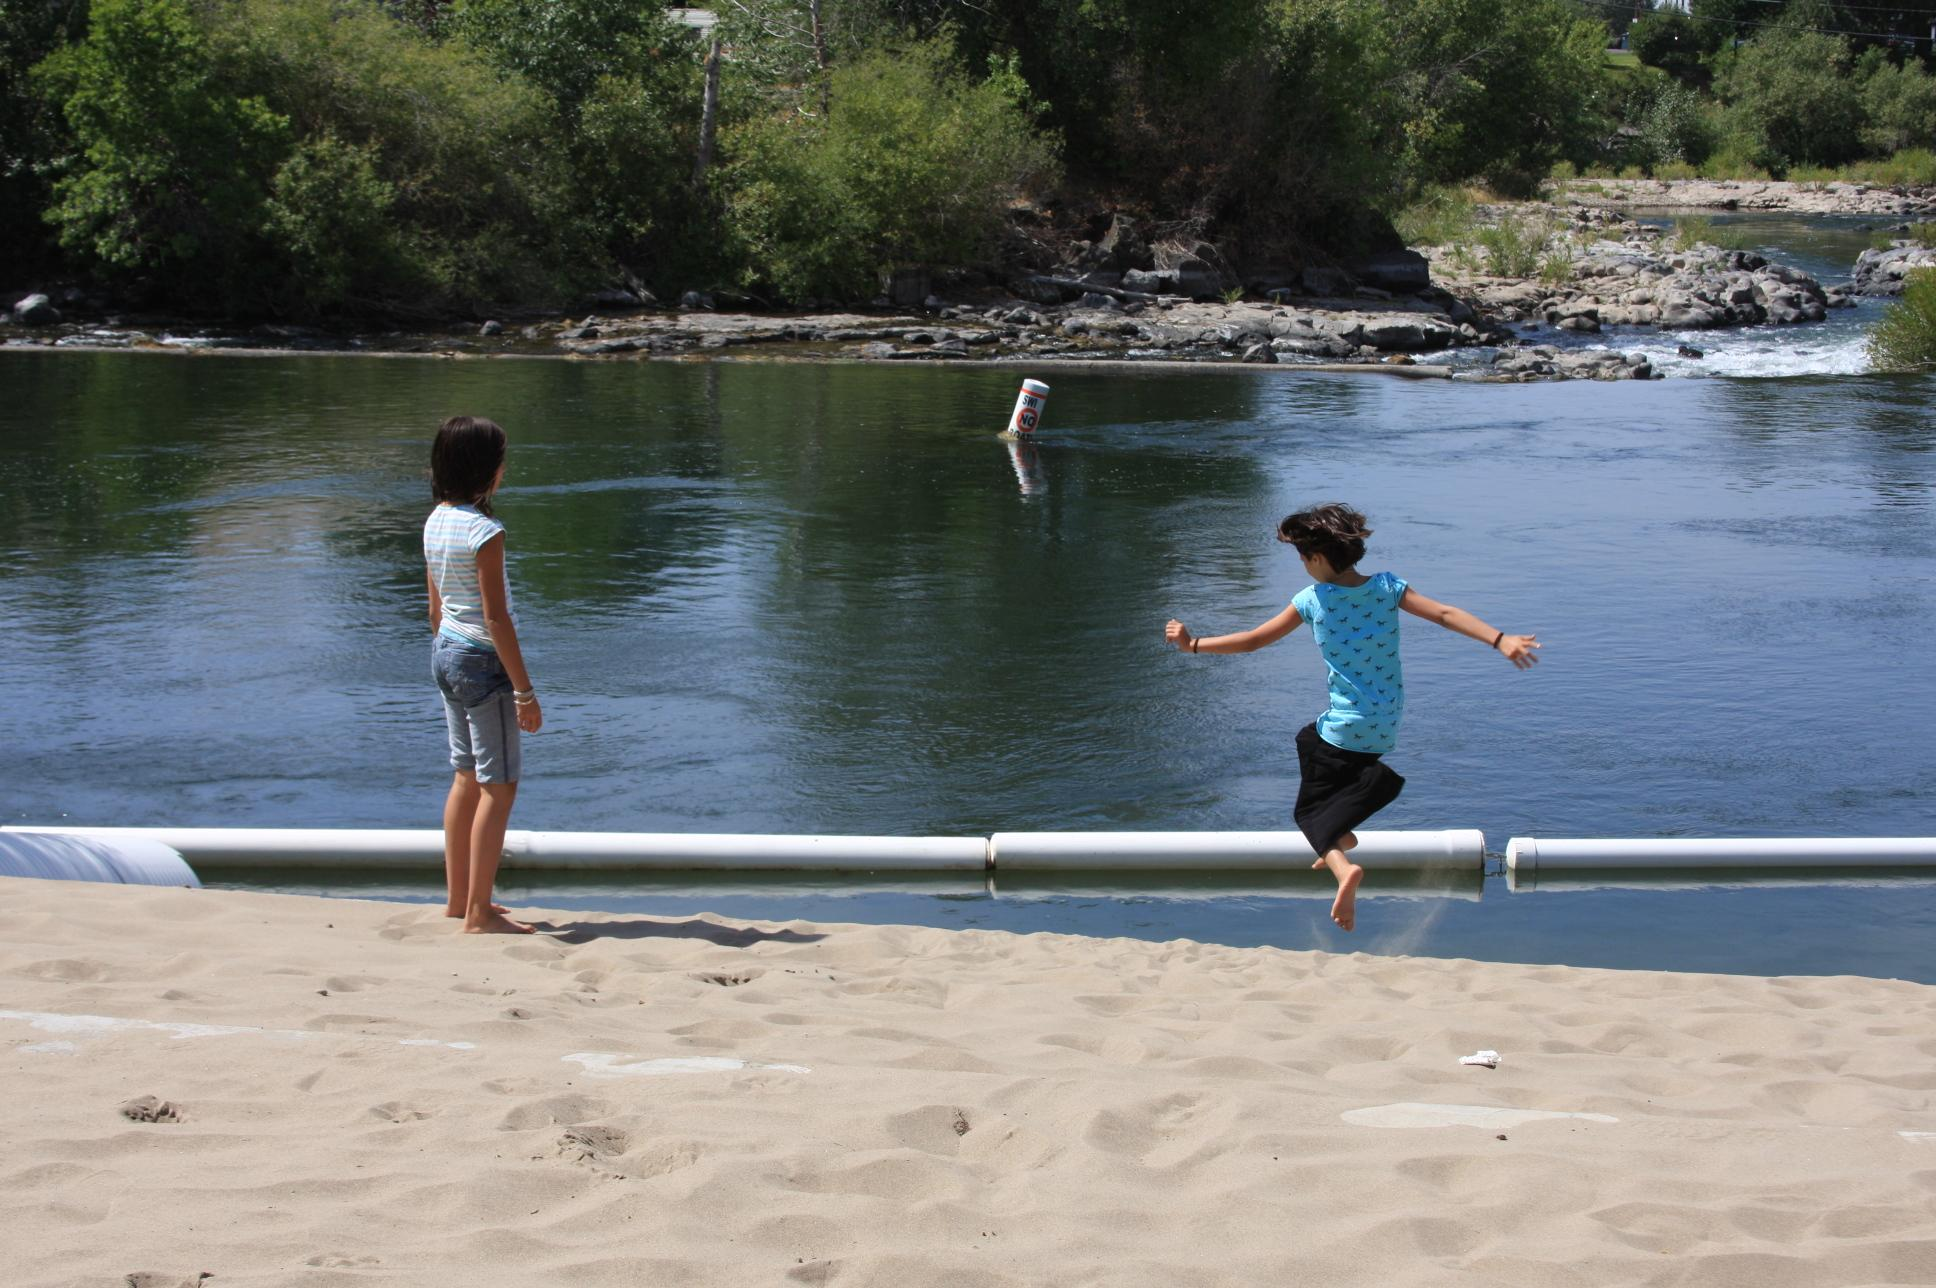 Jumping off the sand bar